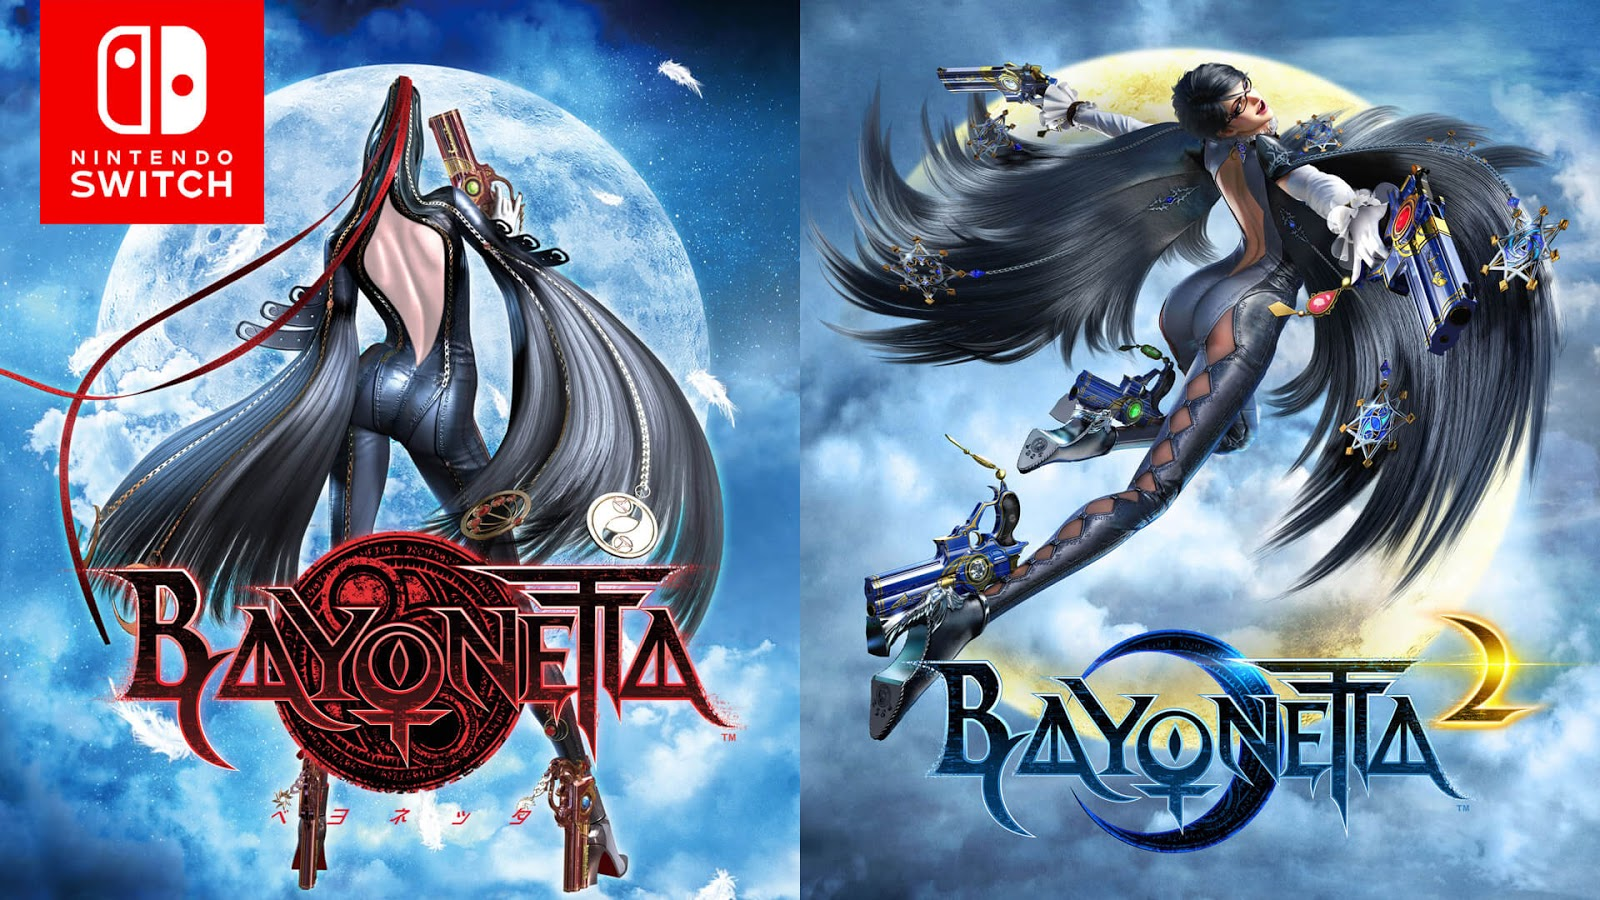 Bayonetta Boasts Strong First Week Sales on Nintendo Switch